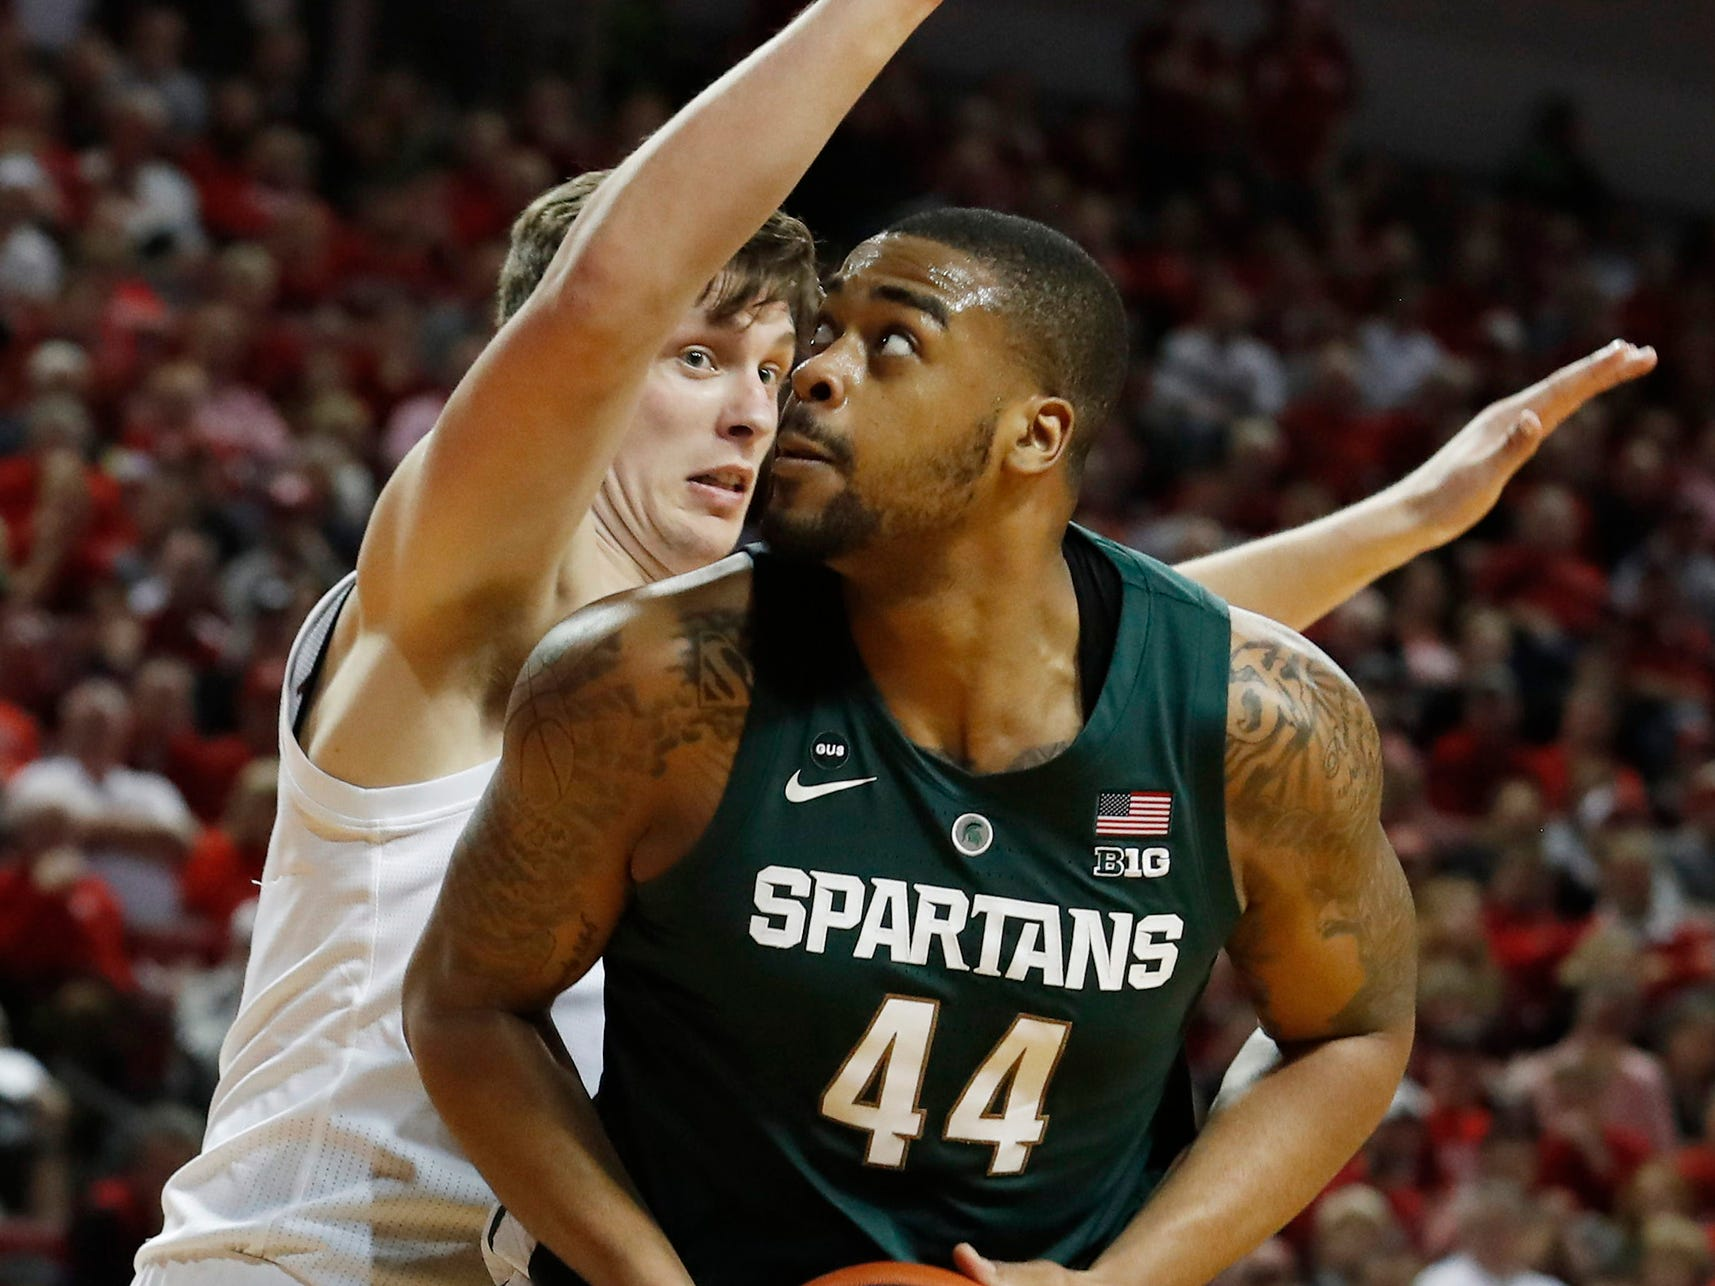 Michigan State Spartans forward Nick Ward (44) controls the ball in front of Nebraska Cornhuskers forward Tanner Borchardt (20) in the second half at Pinnacle Bank Arena. Michigan State won 70-64 on Thursday, Jan. 17, 2019.